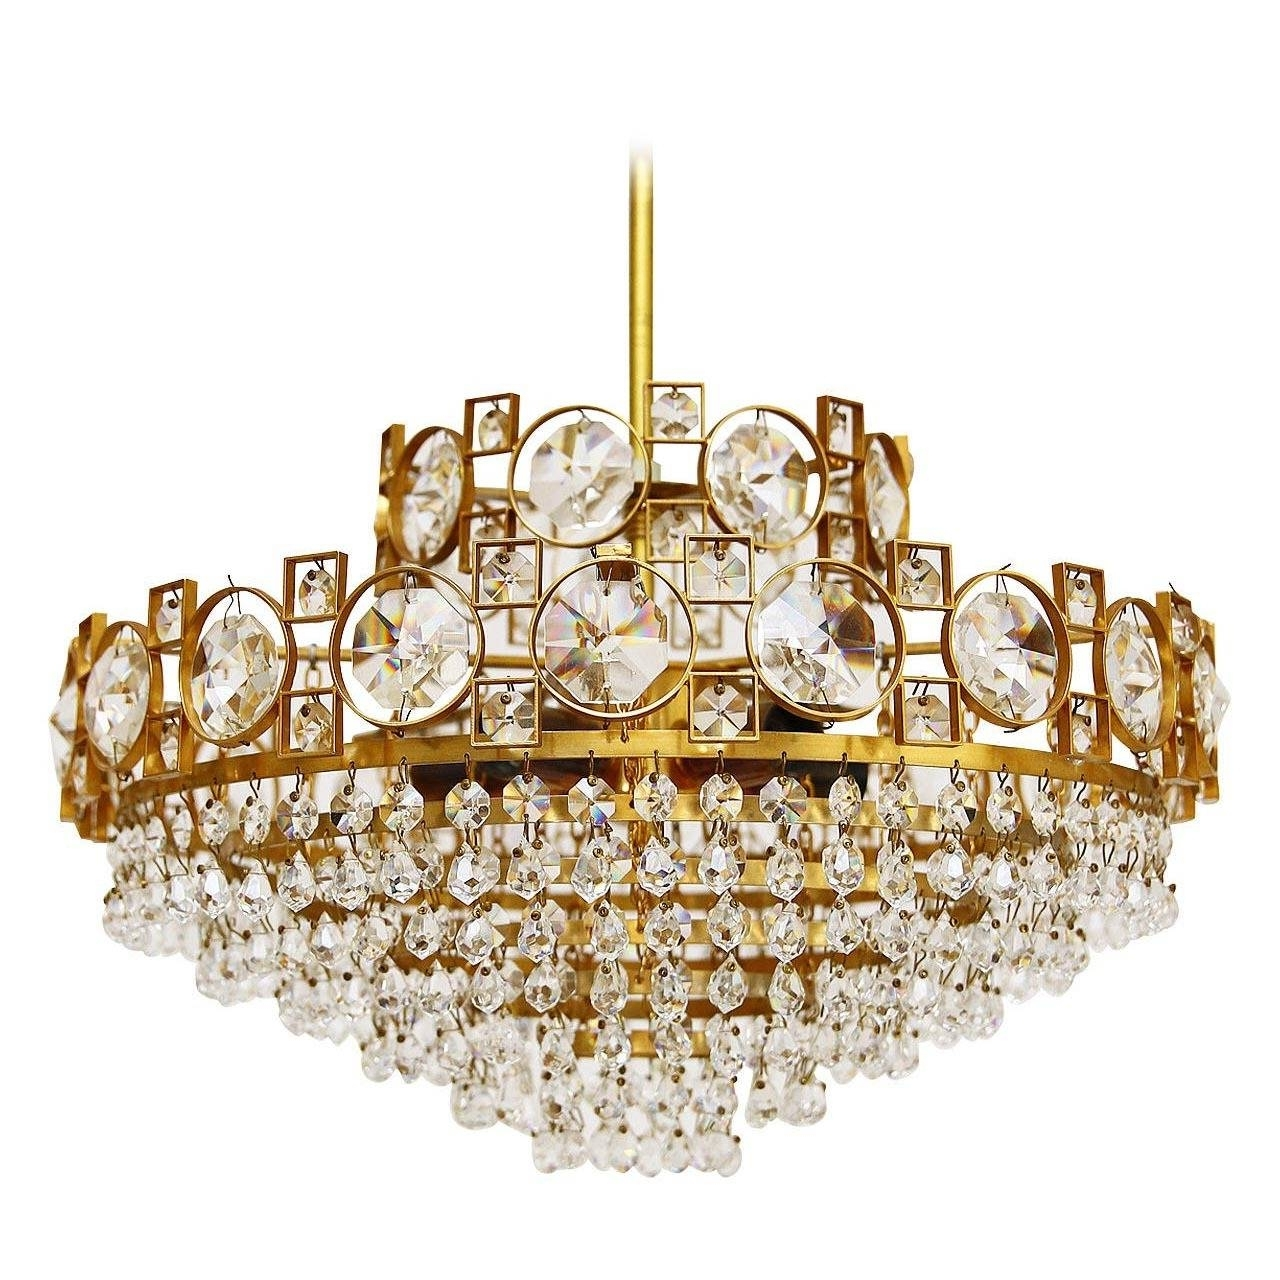 Well Known Sciolari Flush Mount Chandelier, Chrome Glass, Italy, 1970 For Sale Regarding Wall Mount Crystal Chandeliers (View 19 of 20)